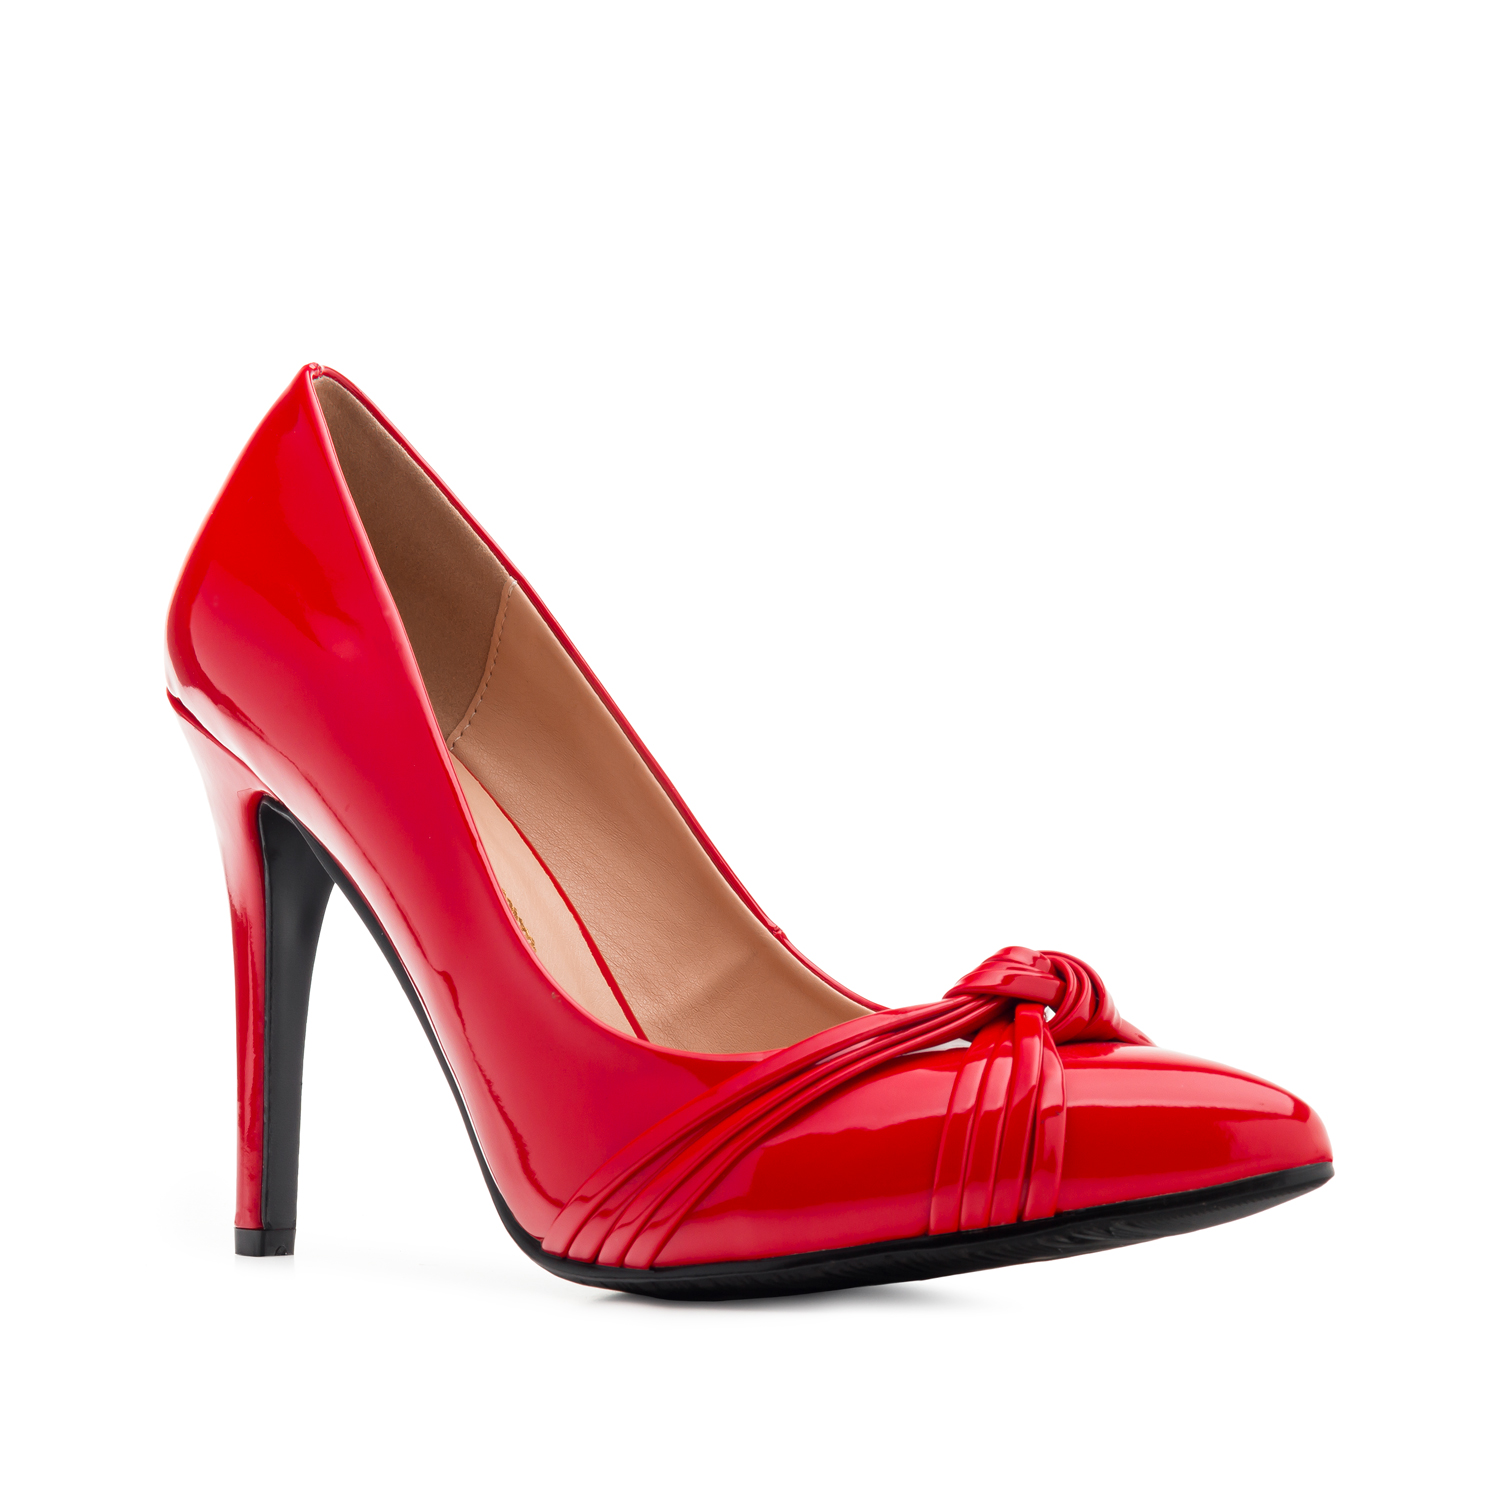 Knot Stilettos in Red Patent